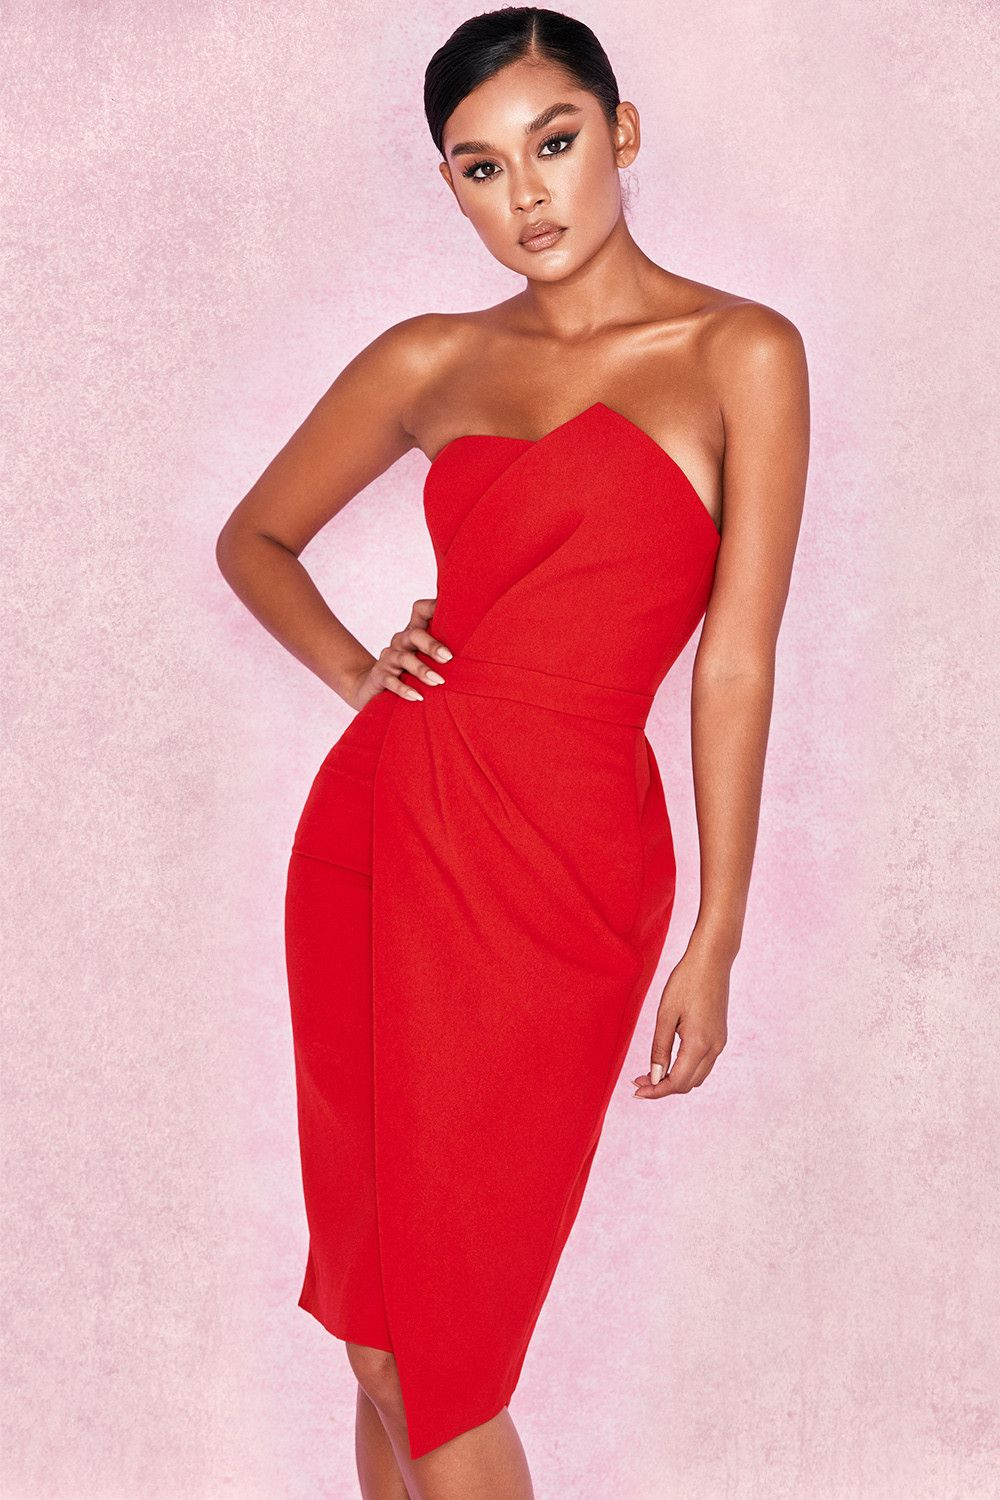 b860a0aede4 Clothing   Structured Dresses    Uma  Red Fold Front Mini Dress ...